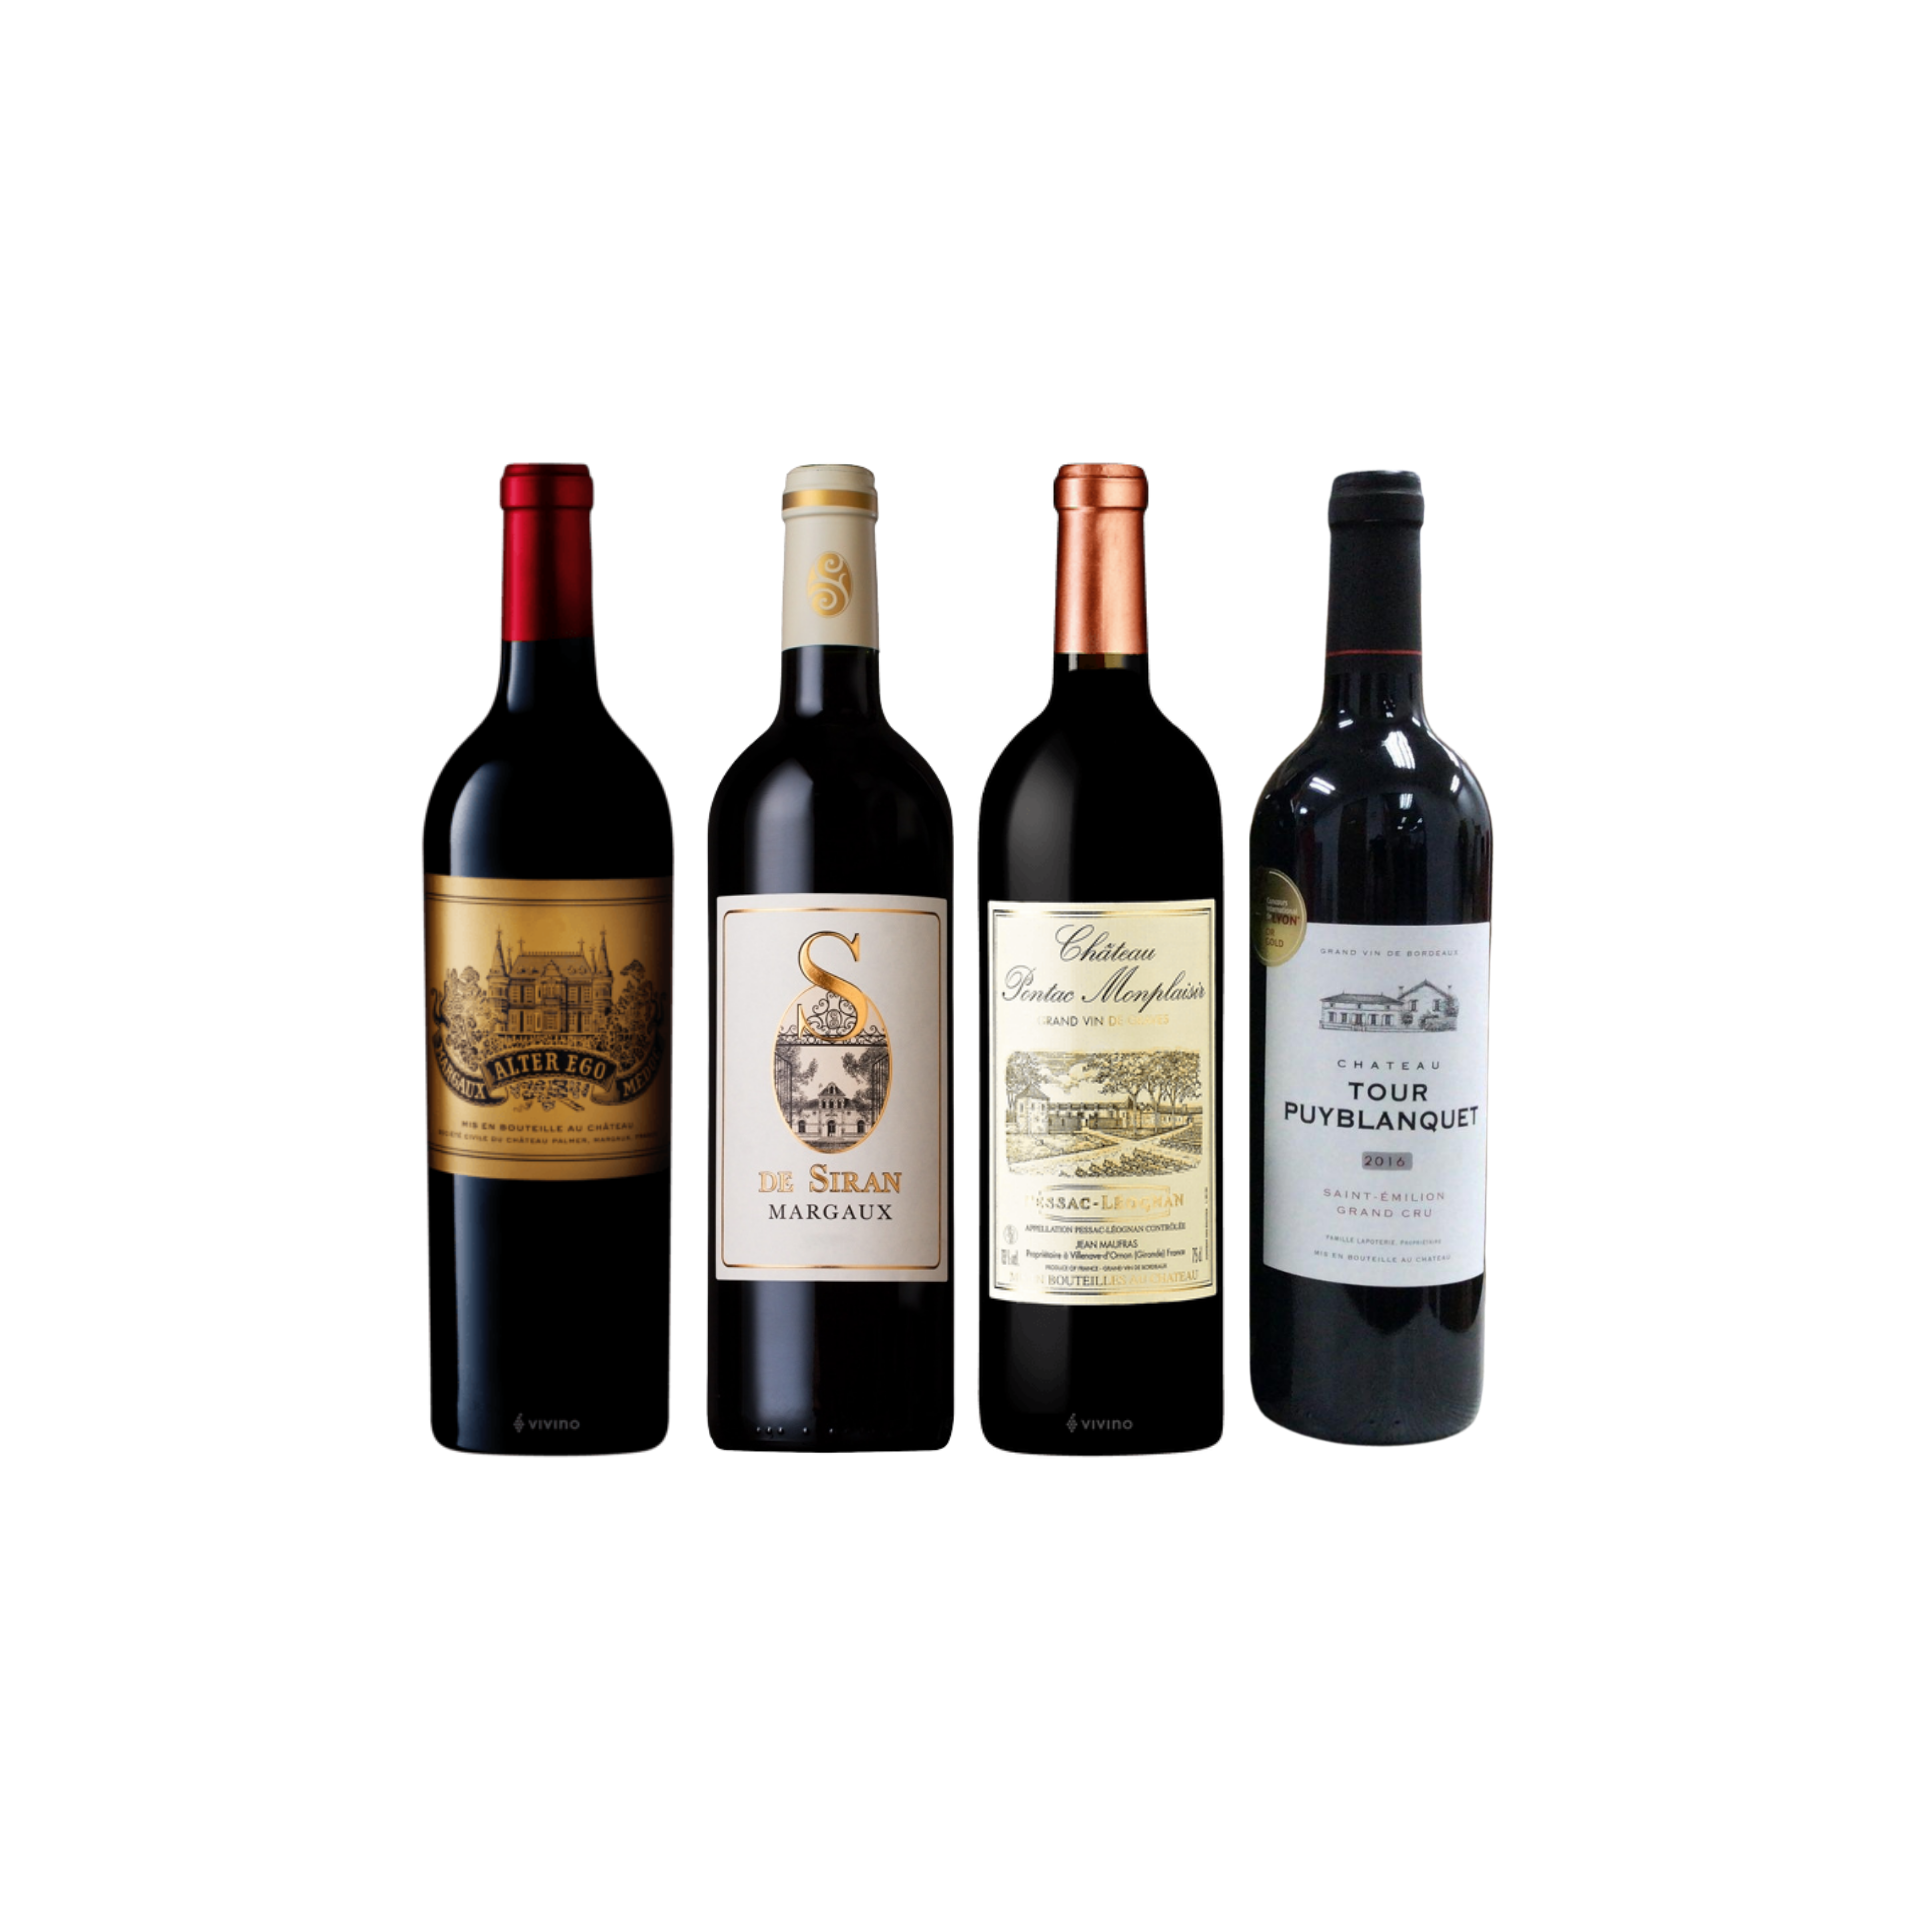 Enjoy 3 Bottles of French Red Wine From Margaux and Pessac Leognan at Only $199 And Top-Up $42 for A Bottle of Saint Emilion Worth $48